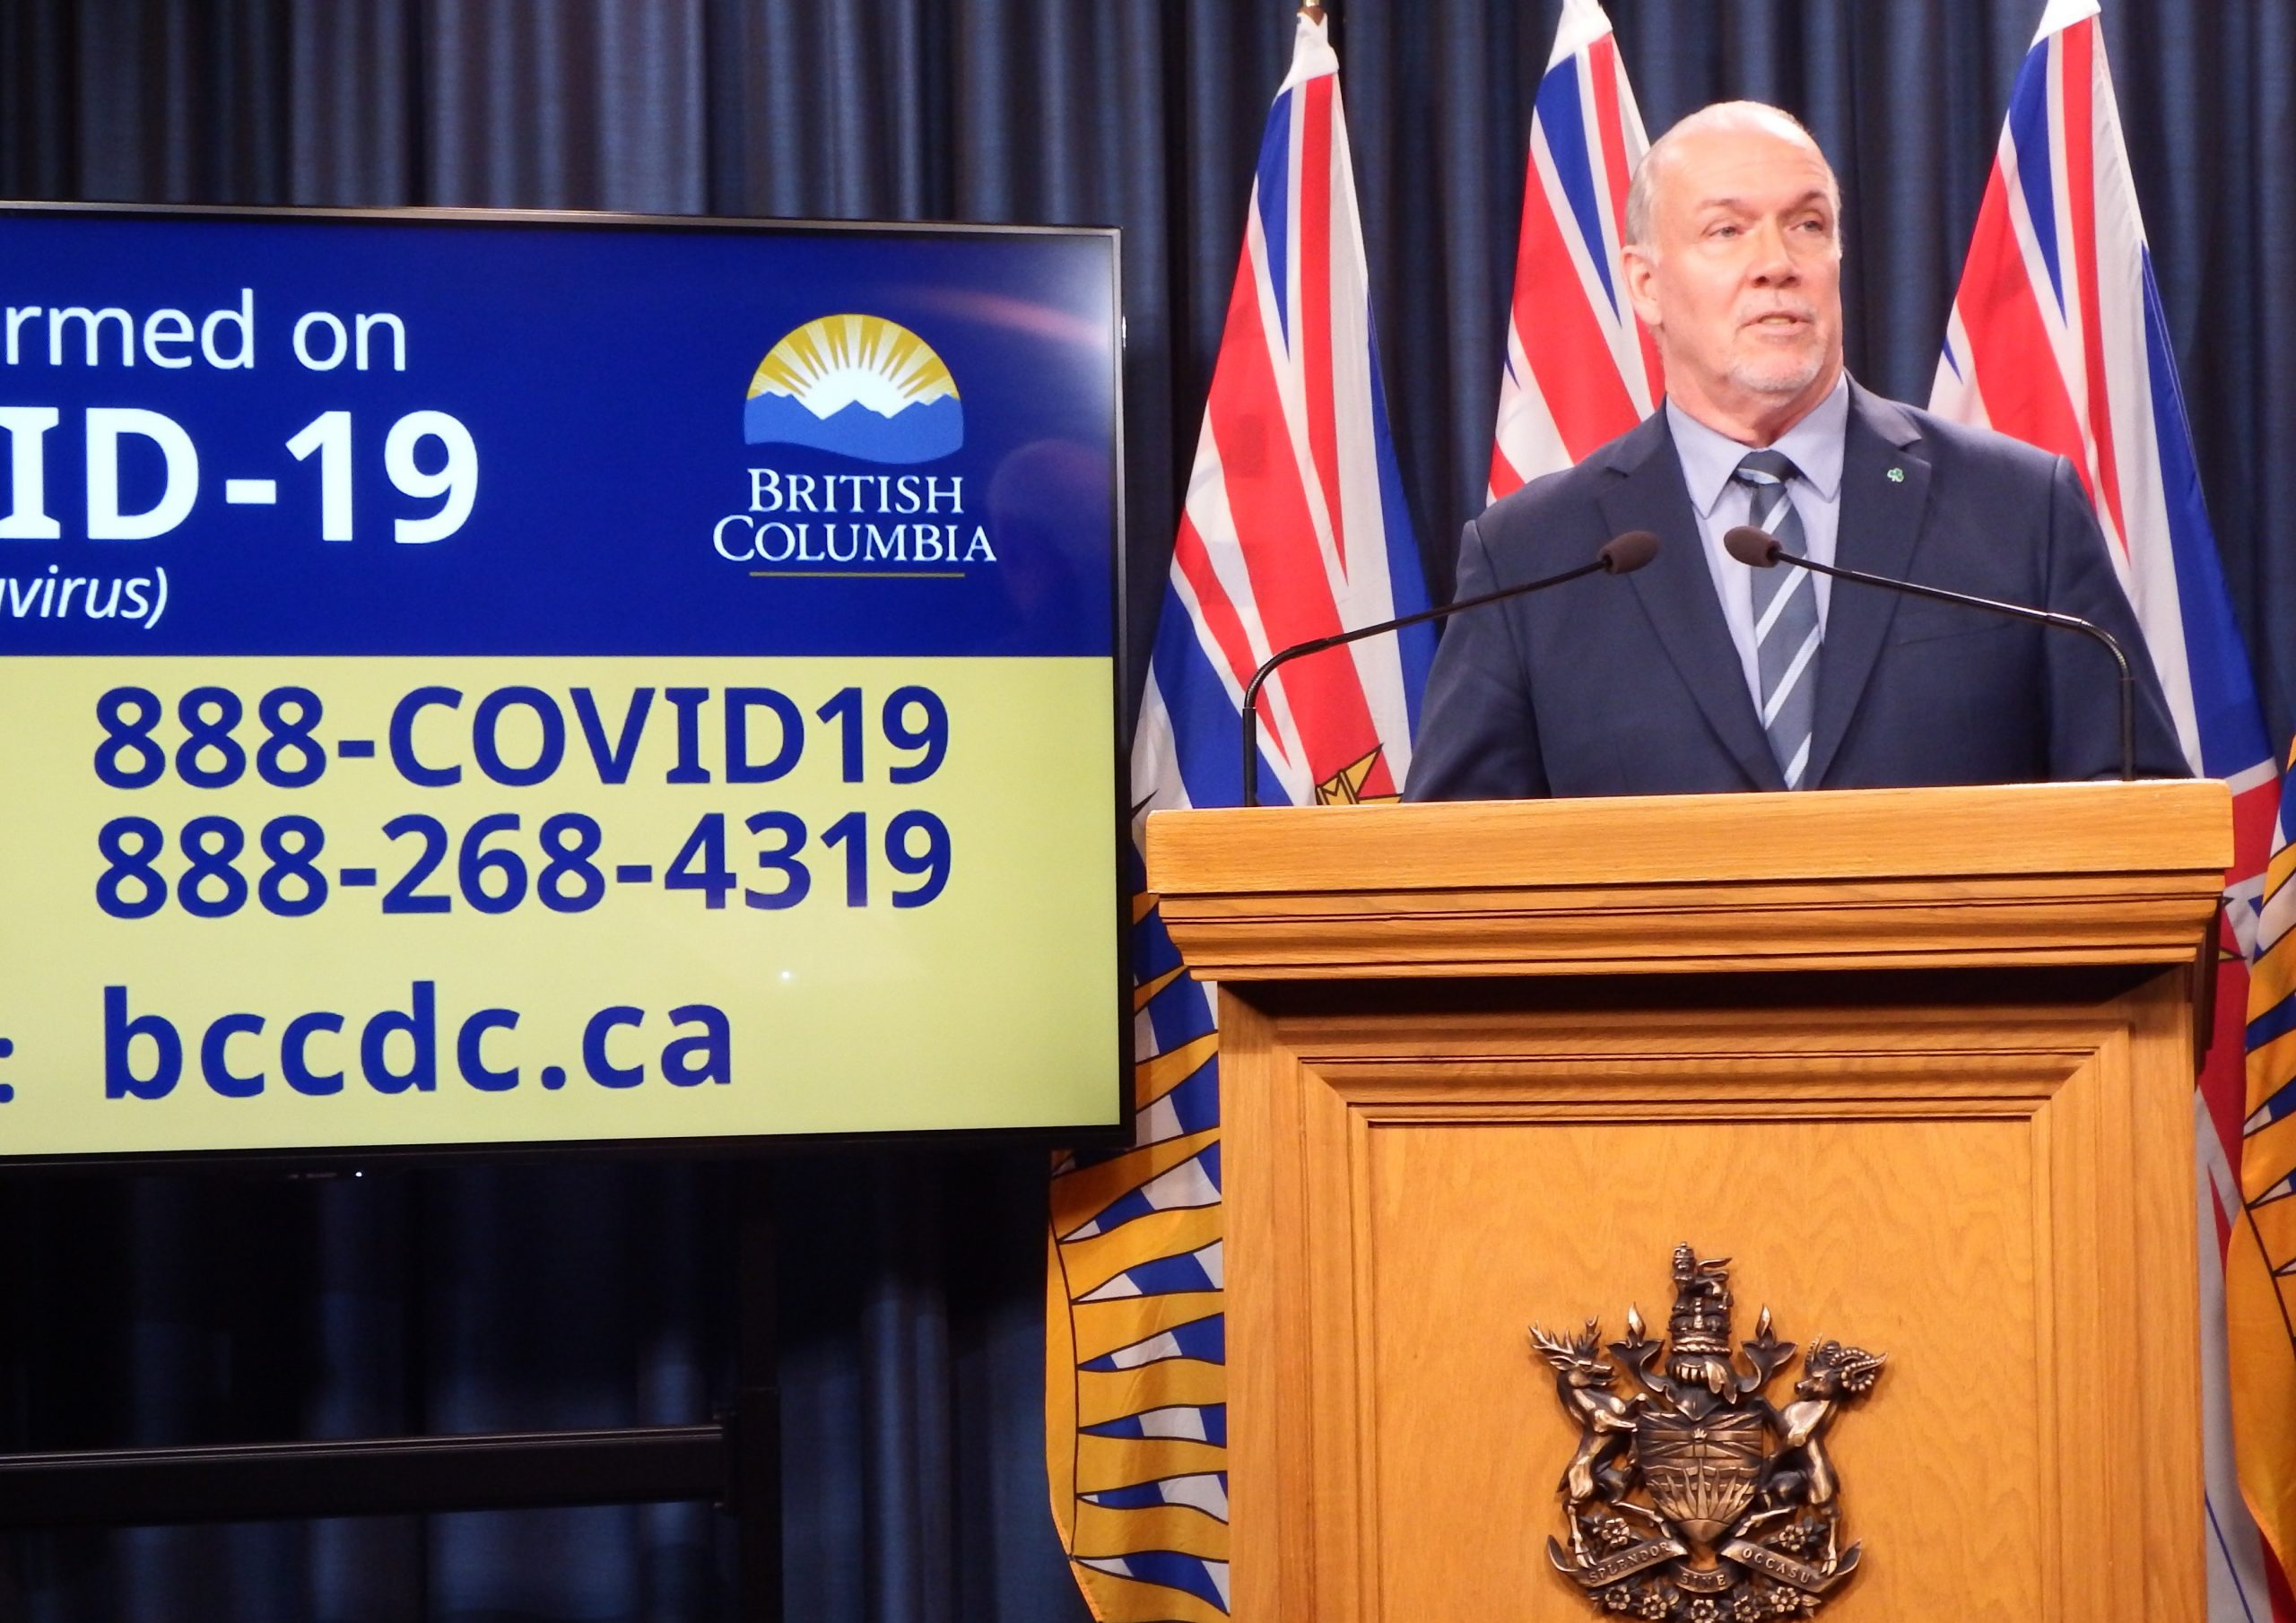 $5 billion economic relief from province will help people hurt by COVID-19